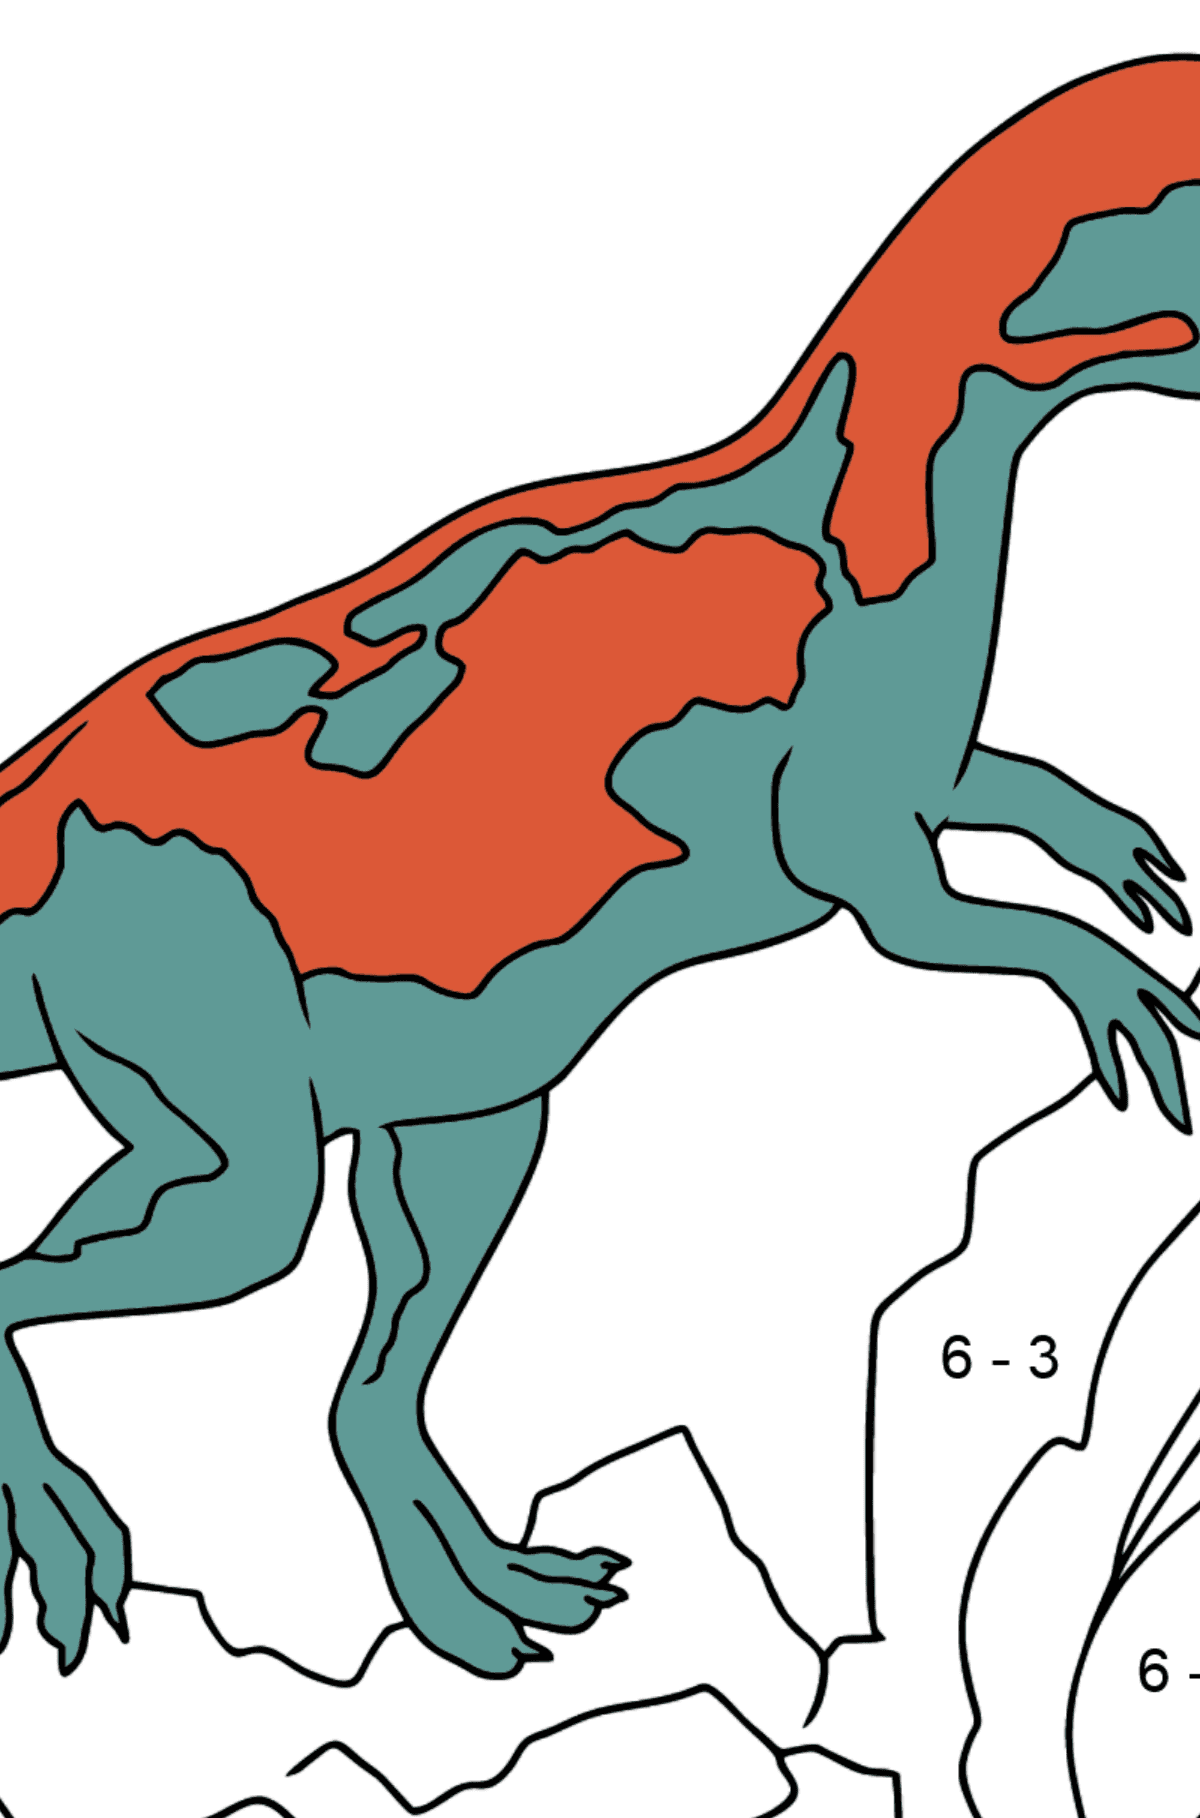 Coloring Page - A Dinosaur is Looking for Food - Math Coloring - Subtraction for Kids